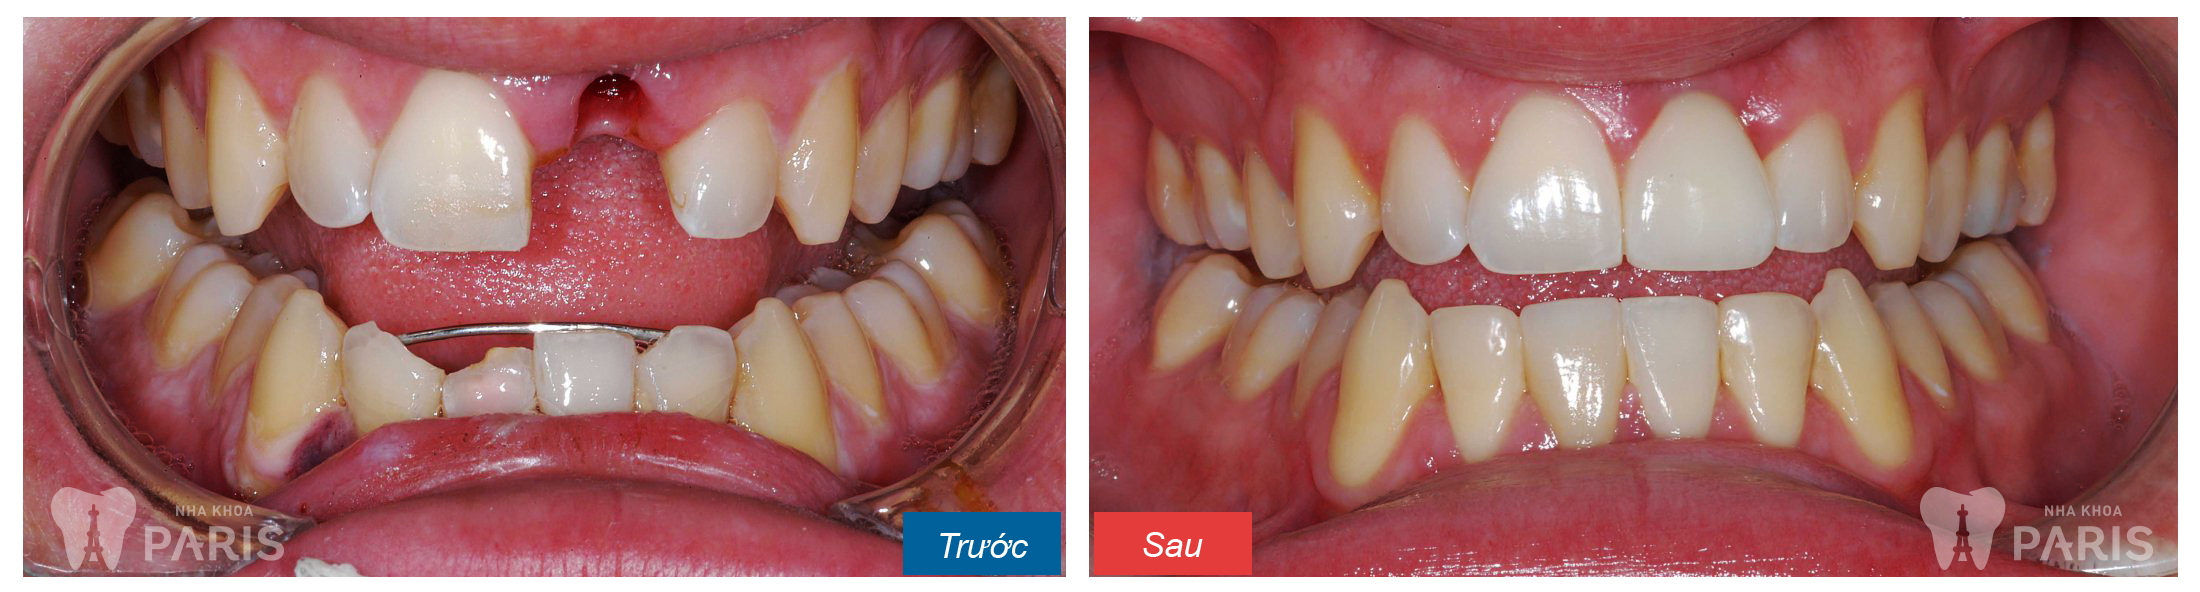 before-and-after-implant